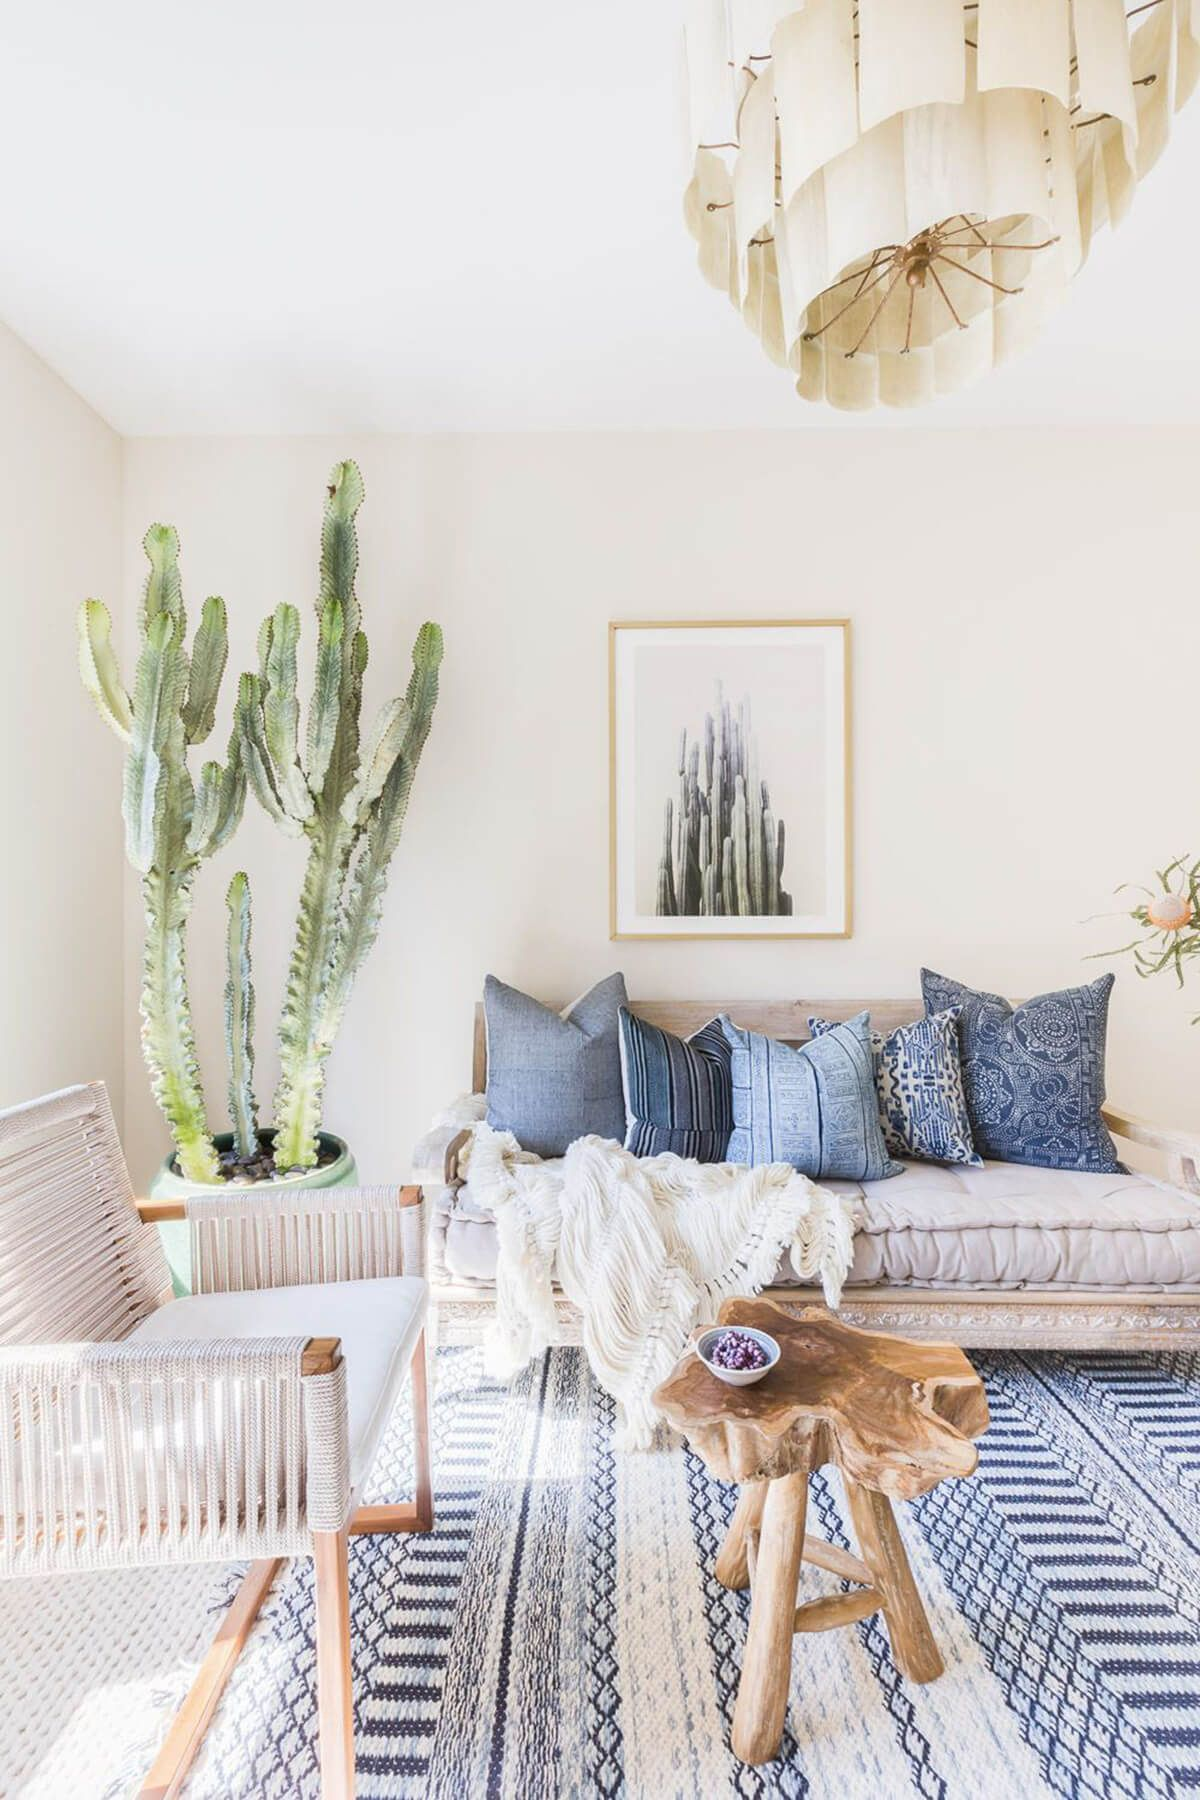 28 Timeless Neutral Home Decor Ideas That Are Full Of